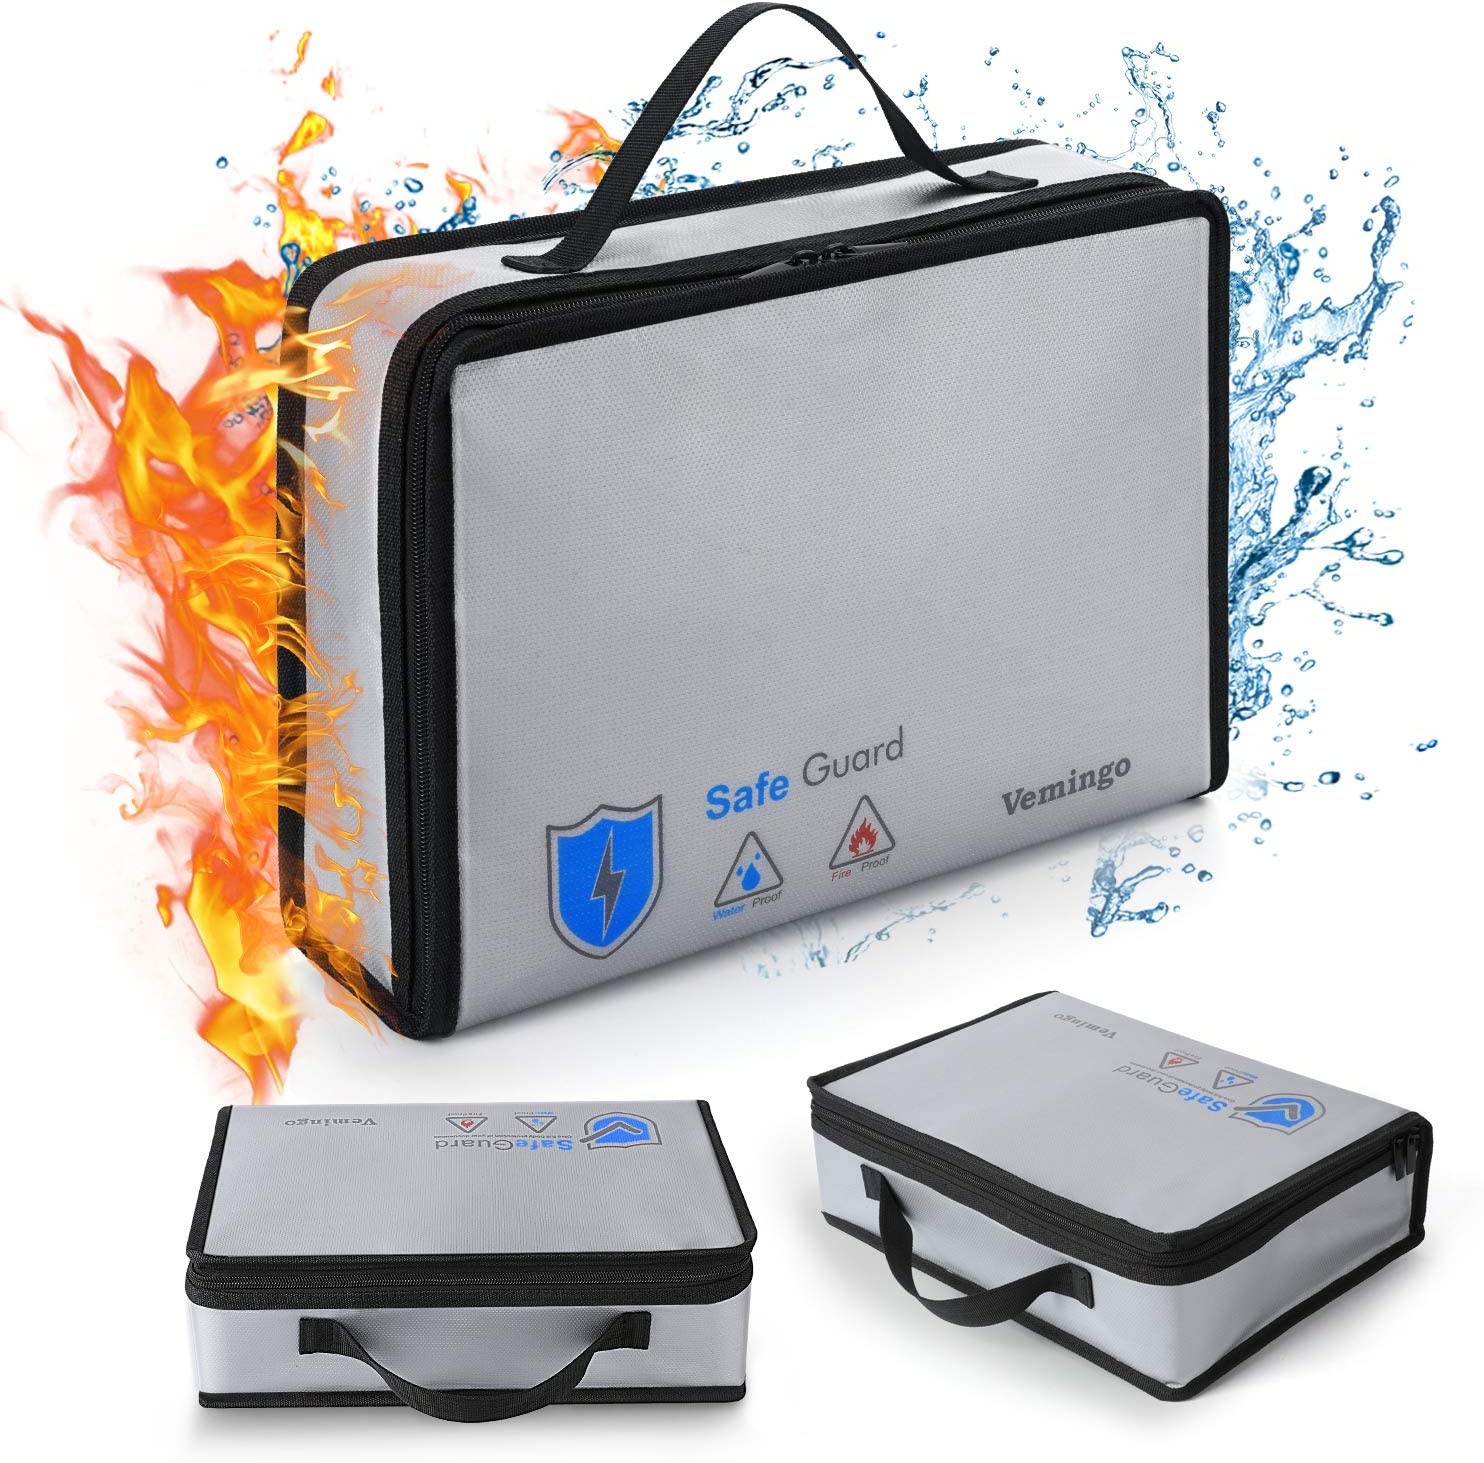 Vemingo Fireproof Document Bags 2-in-1 Fire-Resistant Battery Holder Case Fireproof Safe Storage for Money Laptop Battery Jewelry Passport